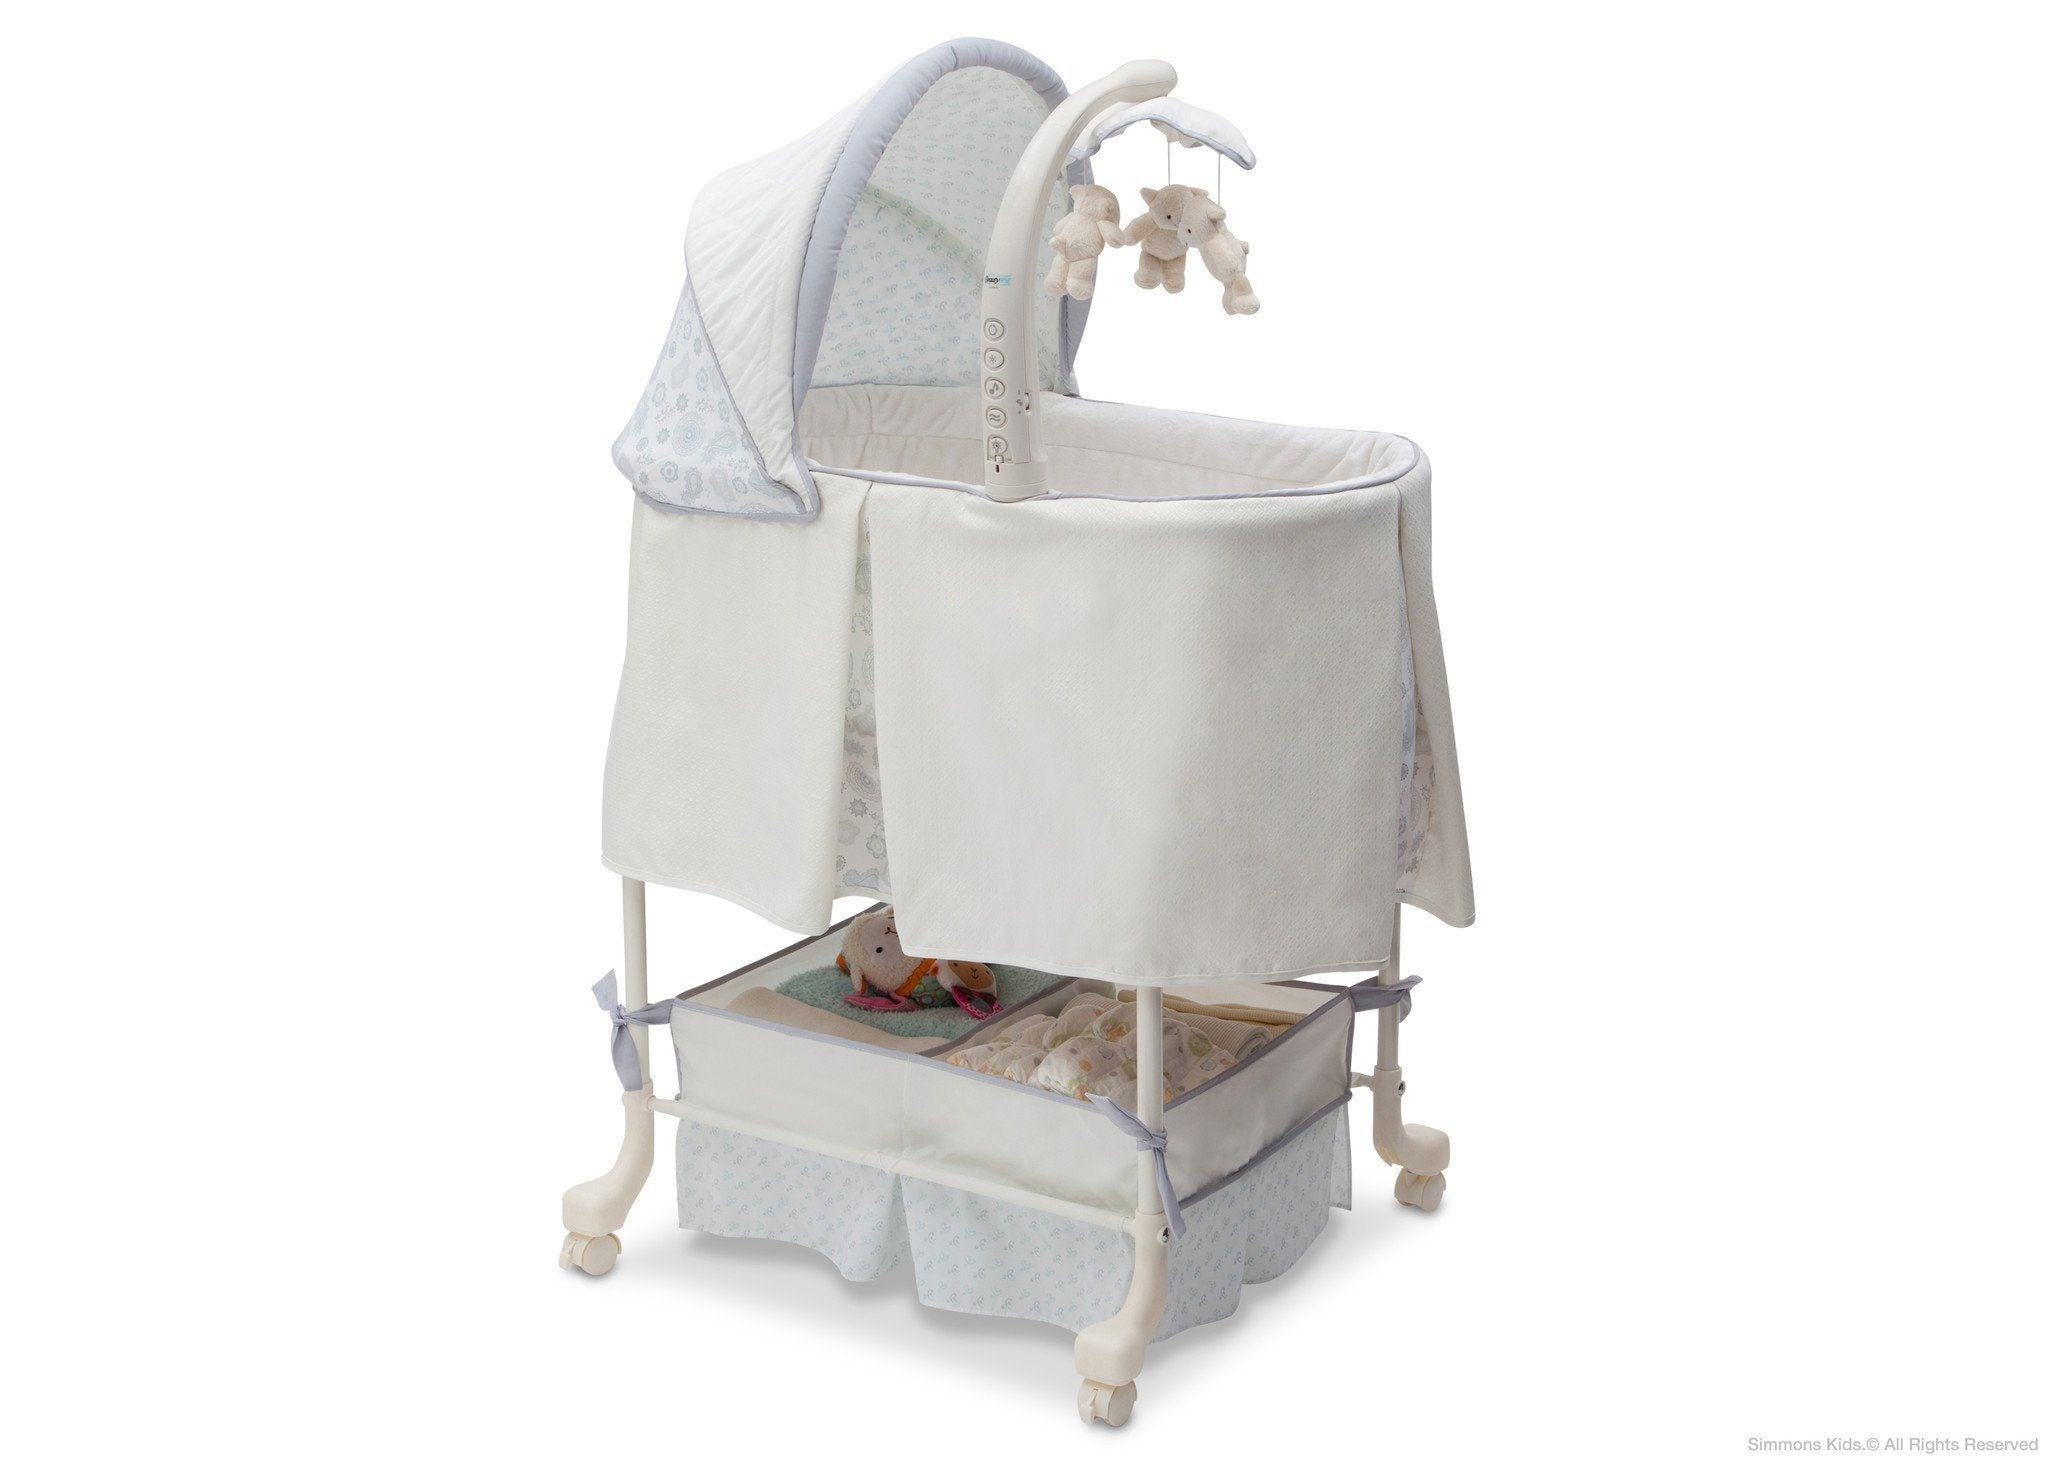 Simmons Kids Paisley (091) Beautyrest Studio Gliding Bassinet (27303) Right Side View a1a